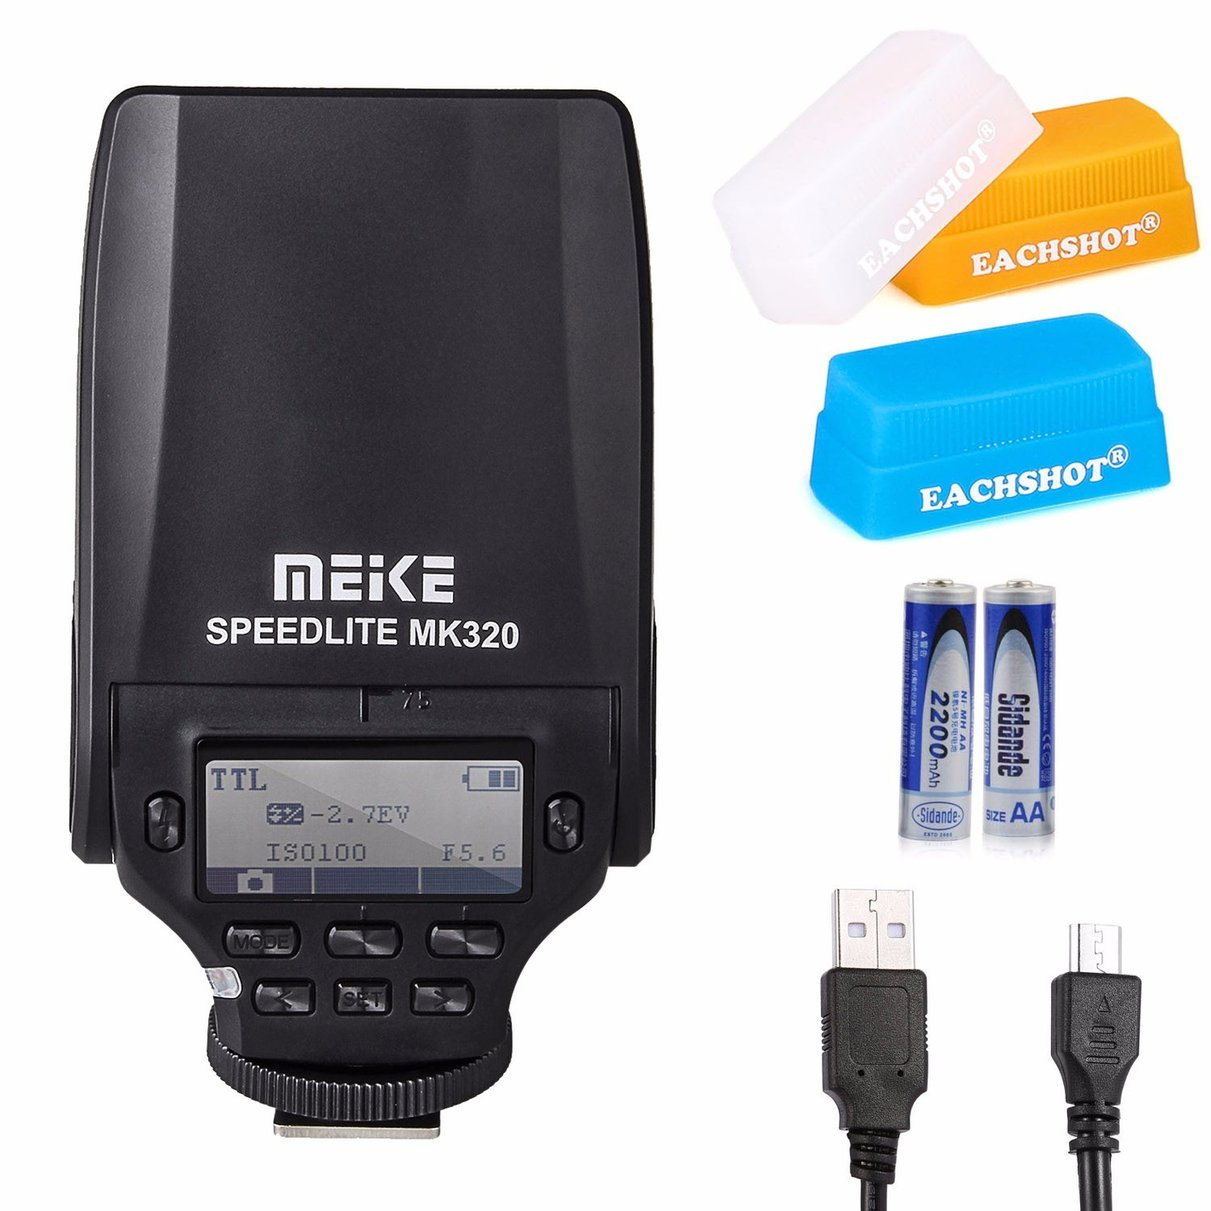 MEIKE MK-320 TTL Flash Speedlite for Olympus  With EACHSHOT Micro USB + 2PCS AA Battery + 3PCS Silicone Diffuser mini flash light meike mk320 mk 320 mk320 c gn32 ettl speedlite for can 60d 7d 6d 70d dslr